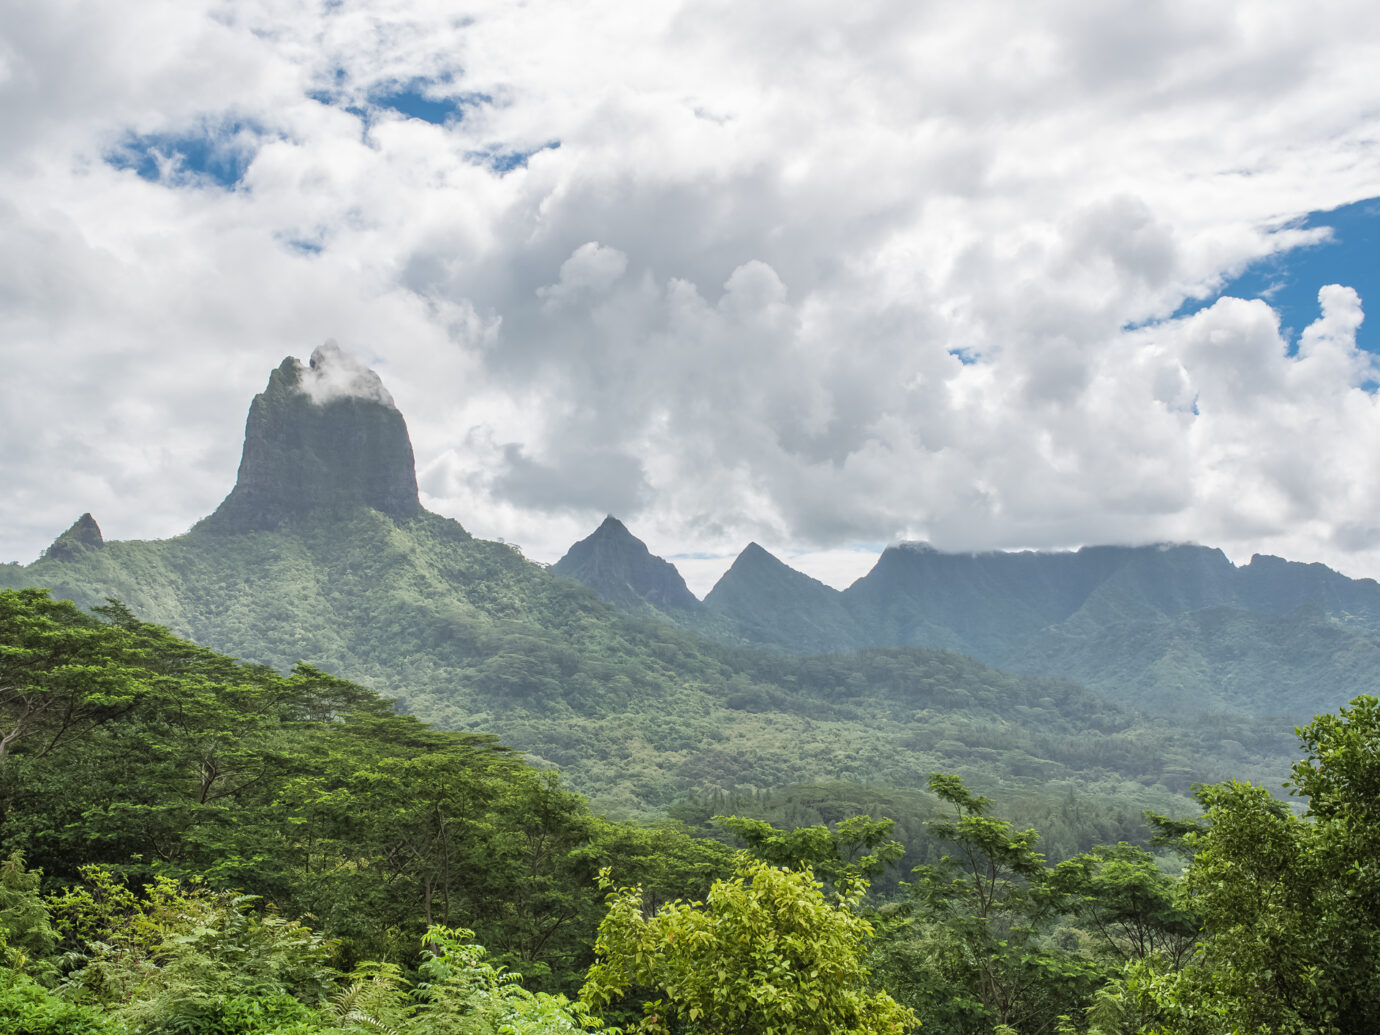 Moorea in Polynesia, Opunohu belvedere, beautiful panorama of the mountains